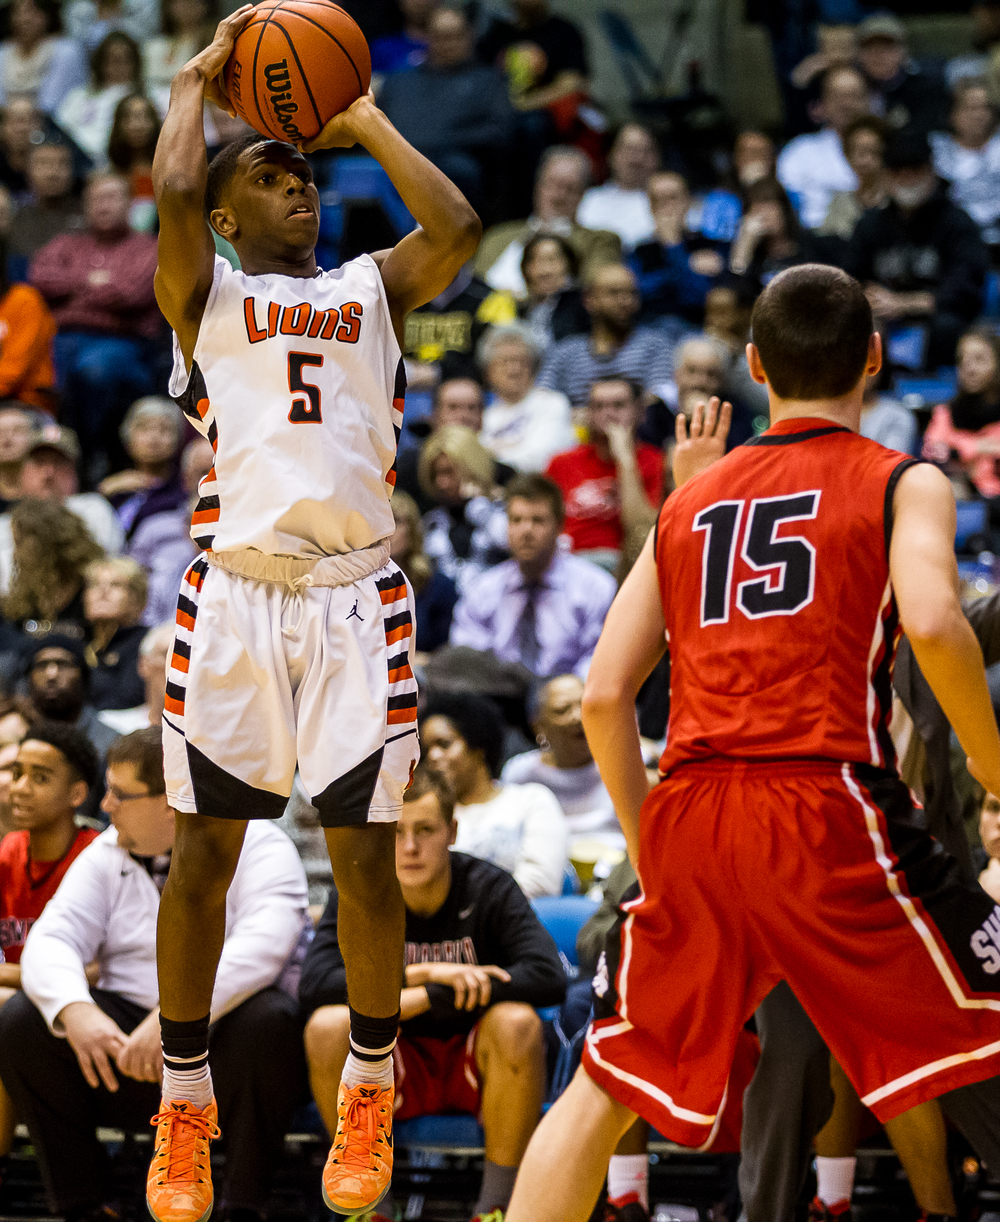 Lanphier's Xavier Bishop (5) sights in one of his five first half three pointers against Springfield in the first half during game two of the 2015 Boys City Tournament at the Prairie Capital Convention Center, Friday, Jan. 23, 2015, in Springfield, Ill. Justin L. Fowler/The State Journal-Register